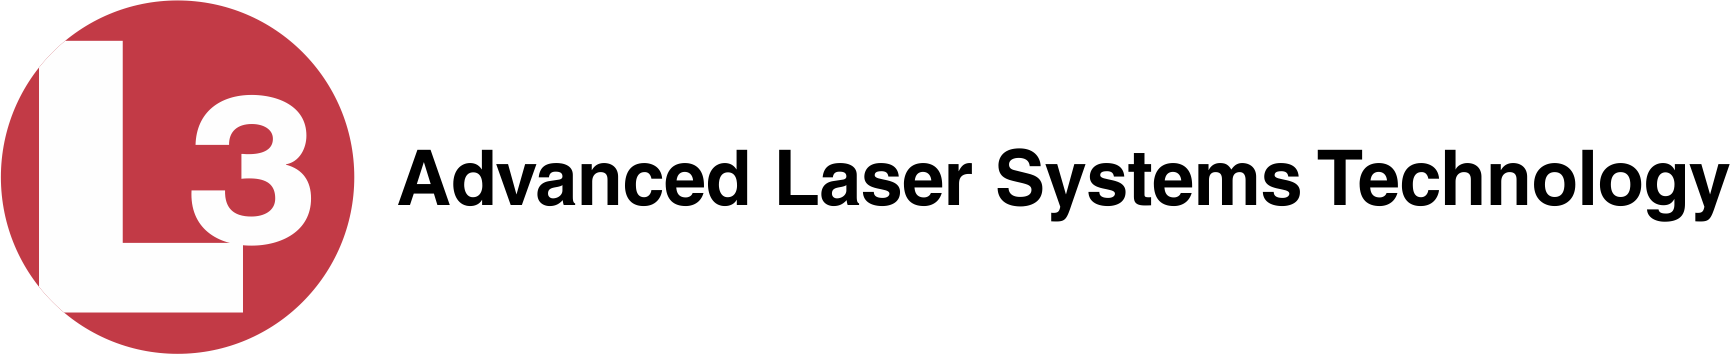 L3 Technologies Inc., Advanced Laser Systems Technology Division logo